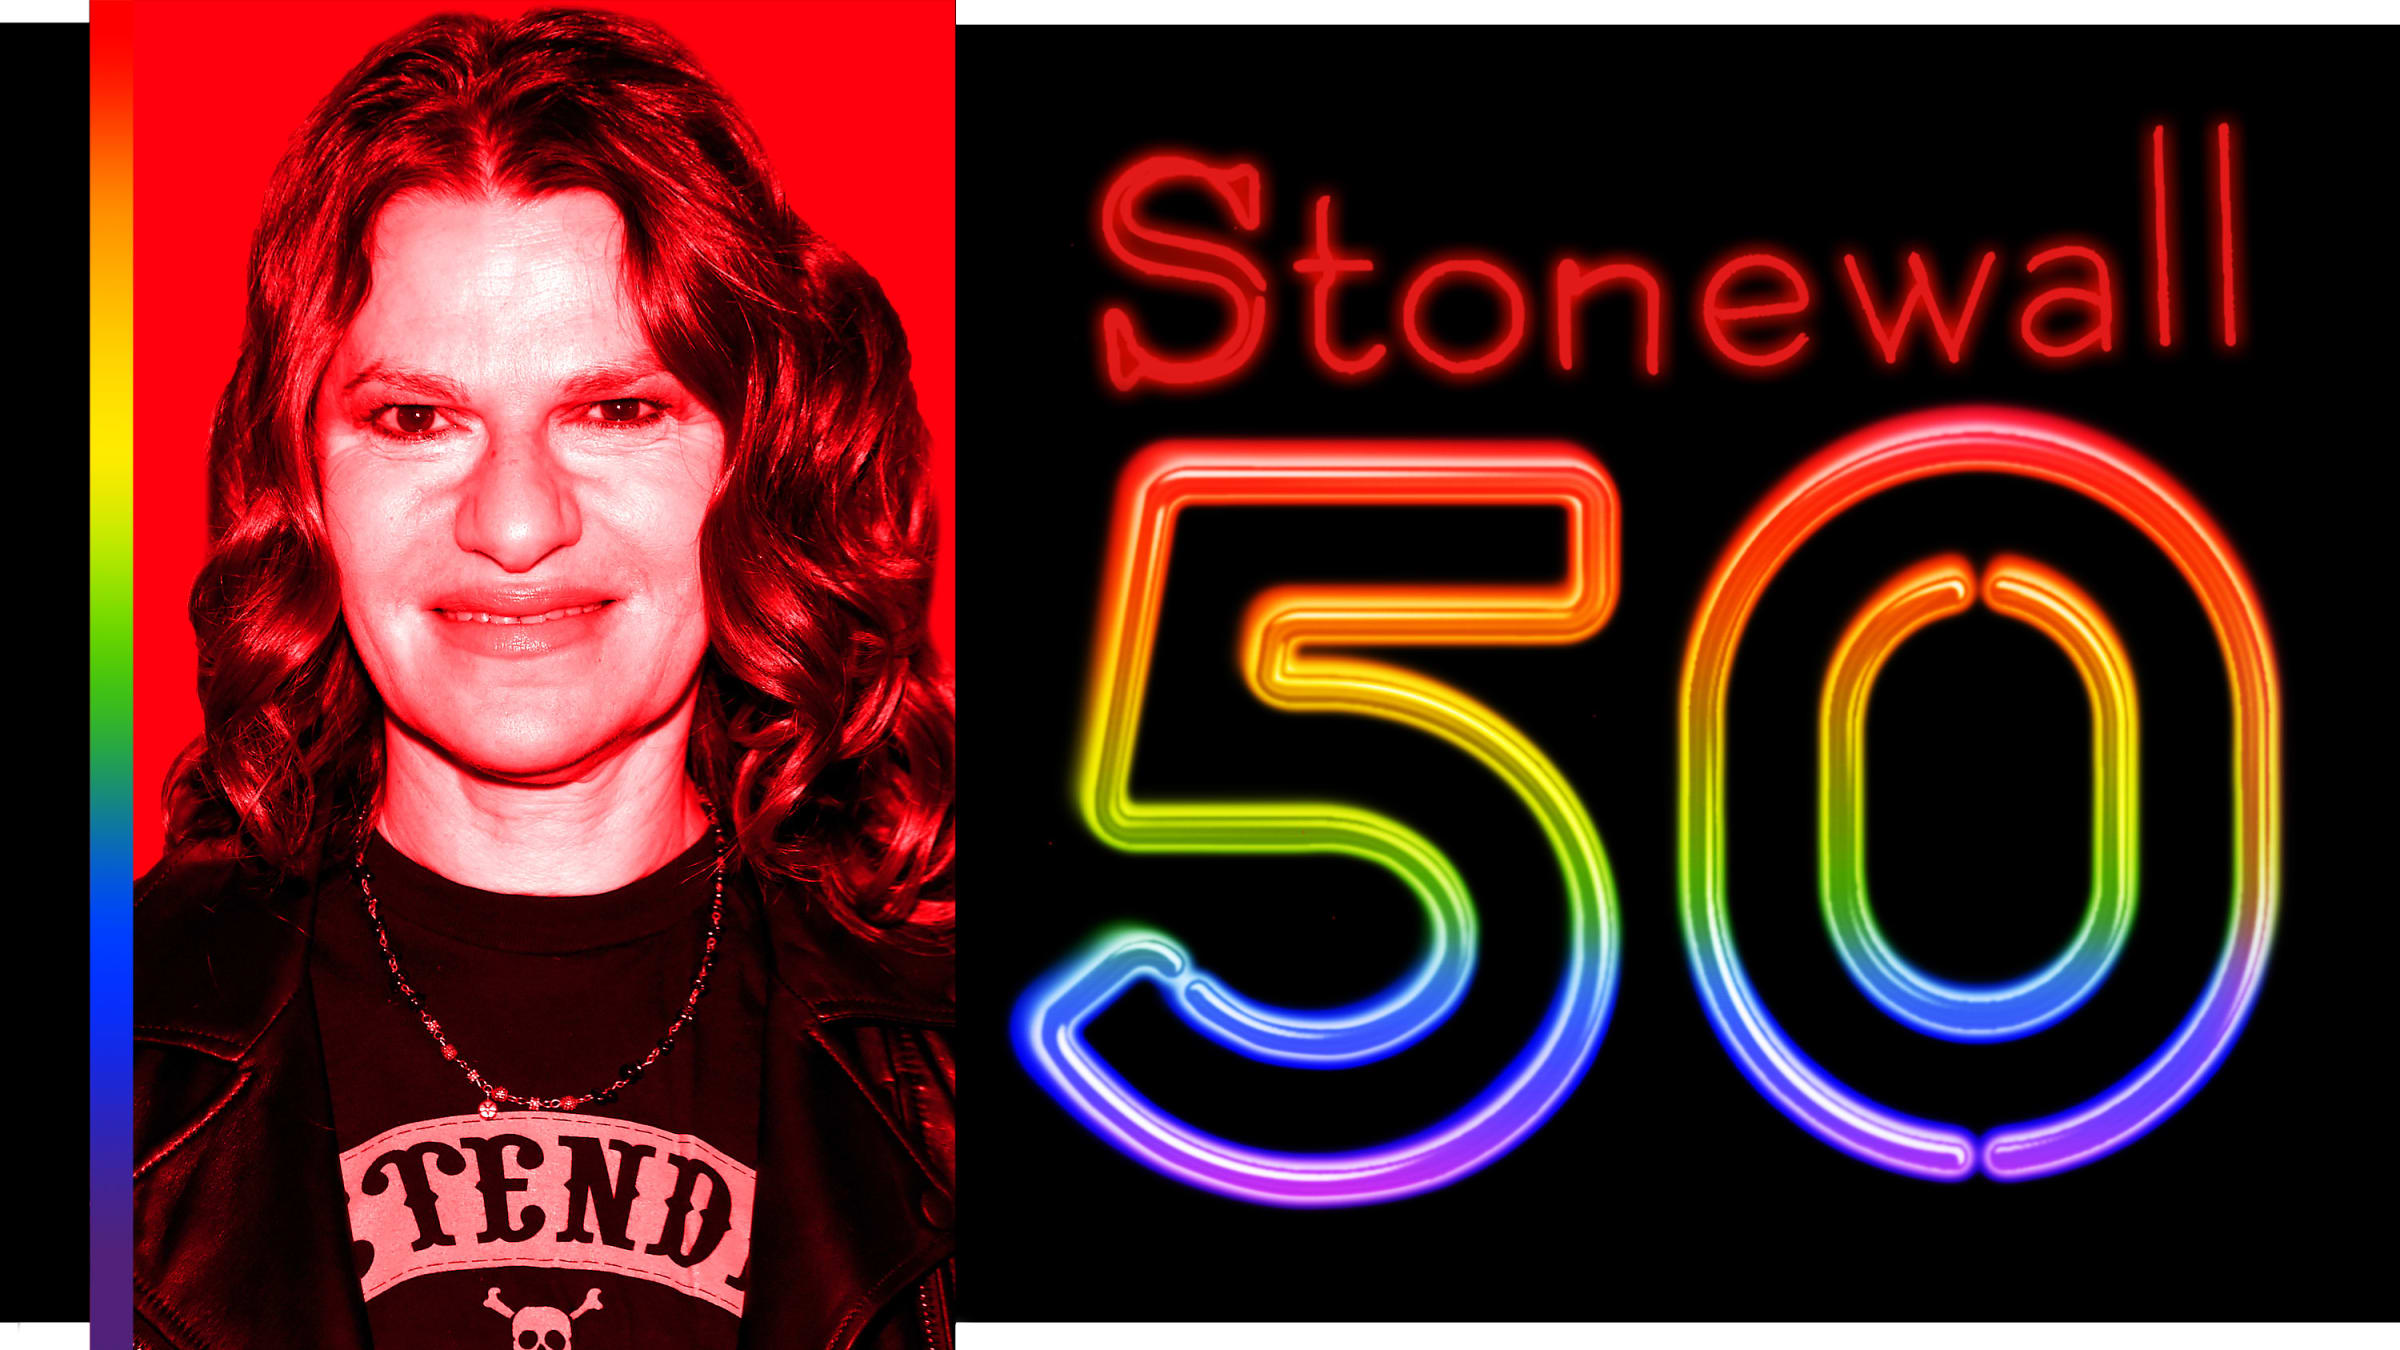 Sandra Bernhard on Stonewall 50: 'The Gay Community Should Help Lift All Other Marginalized People Up'